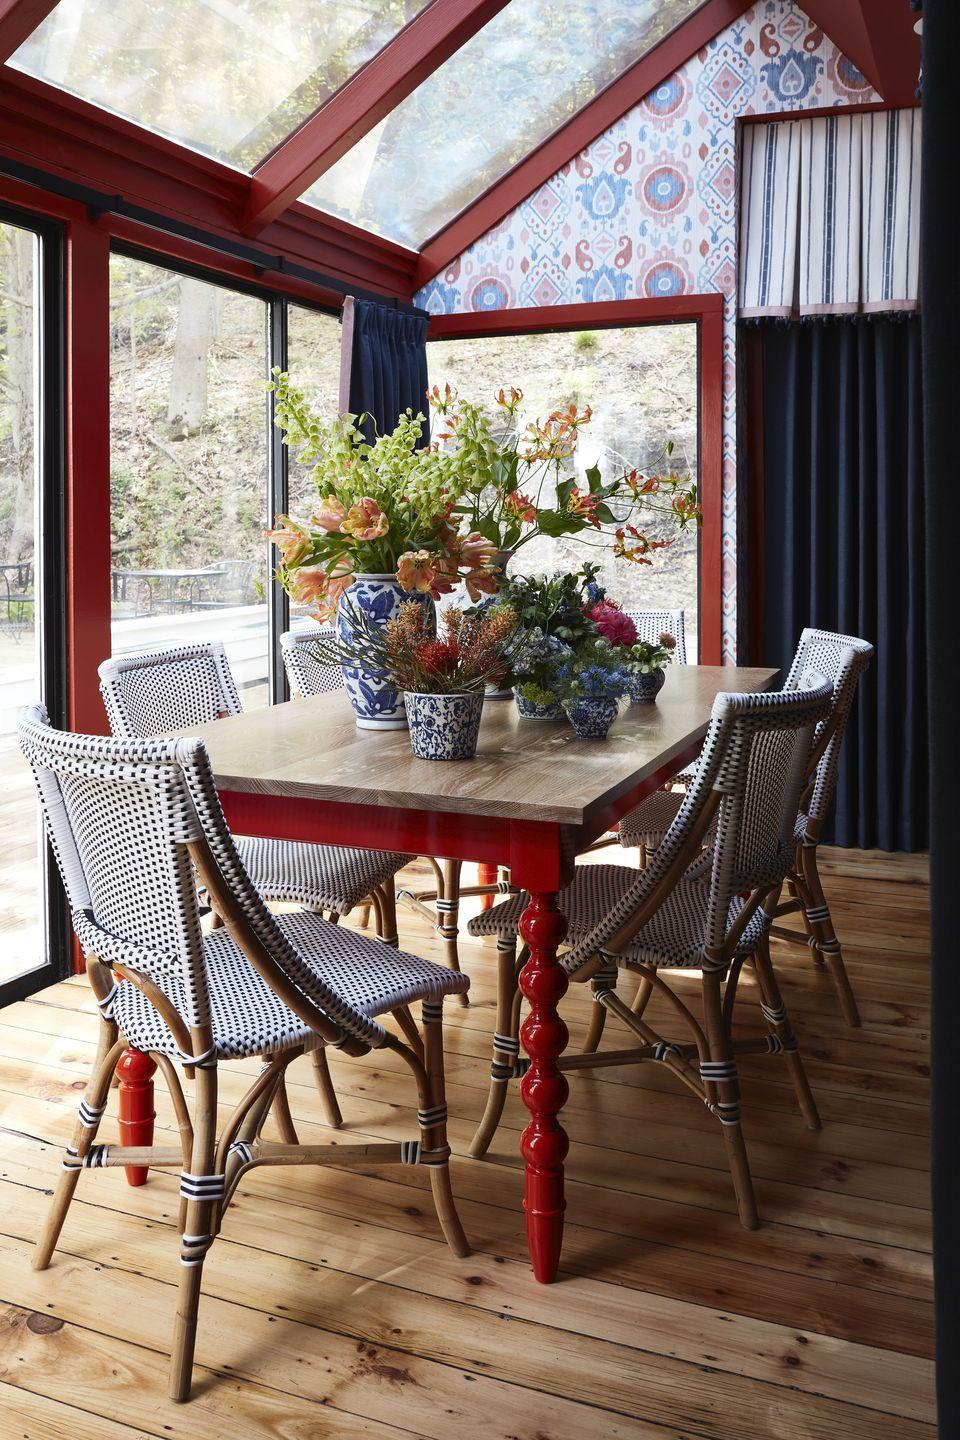 """<p>A key element in this dining room by Virginia Toledo of the firm <a href=""""http://toledogeller.com/"""" rel=""""nofollow noopener"""" target=""""_blank"""" data-ylk=""""slk:Toledo Geller"""" class=""""link rapid-noclick-resp"""">Toledo Geller</a> is the red-legged communal dining table—<em>comparte</em> means """"to share"""" in Spanish. """"I smile thinking about the friendships that might be forged between guests that decided to share a meal together in the dining room I designed,"""" she told us. The red, white, and blue Eliza Ikat wallpaper from <a href=""""https://fschumacher.com/"""" rel=""""nofollow noopener"""" target=""""_blank"""" data-ylk=""""slk:Schumacher"""" class=""""link rapid-noclick-resp"""">Schumacher</a> is a twist on classic Americana, according to the designer: """"It felt native to the inn and its New England location, but the color palette is used in a globally inspired pattern."""" Toledo felt it was exactly what the Kaleidoscope Project represents, the diverse backgrounds """"that make up the fabric of America.""""<br></p>"""